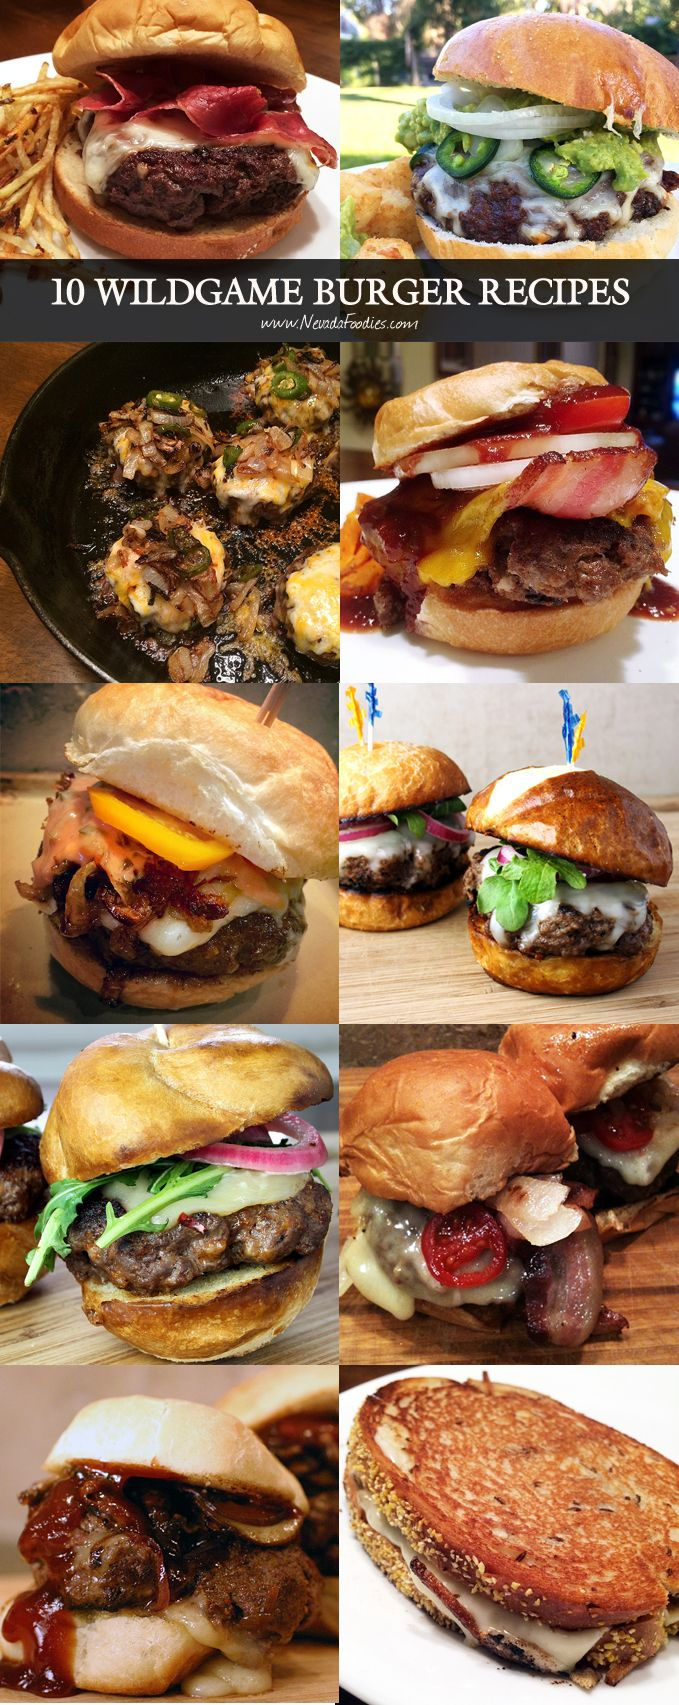 10 Wildgame Burger Recipes   http://www.nevadafoodies.com/10-wildgame-burger-recipes/